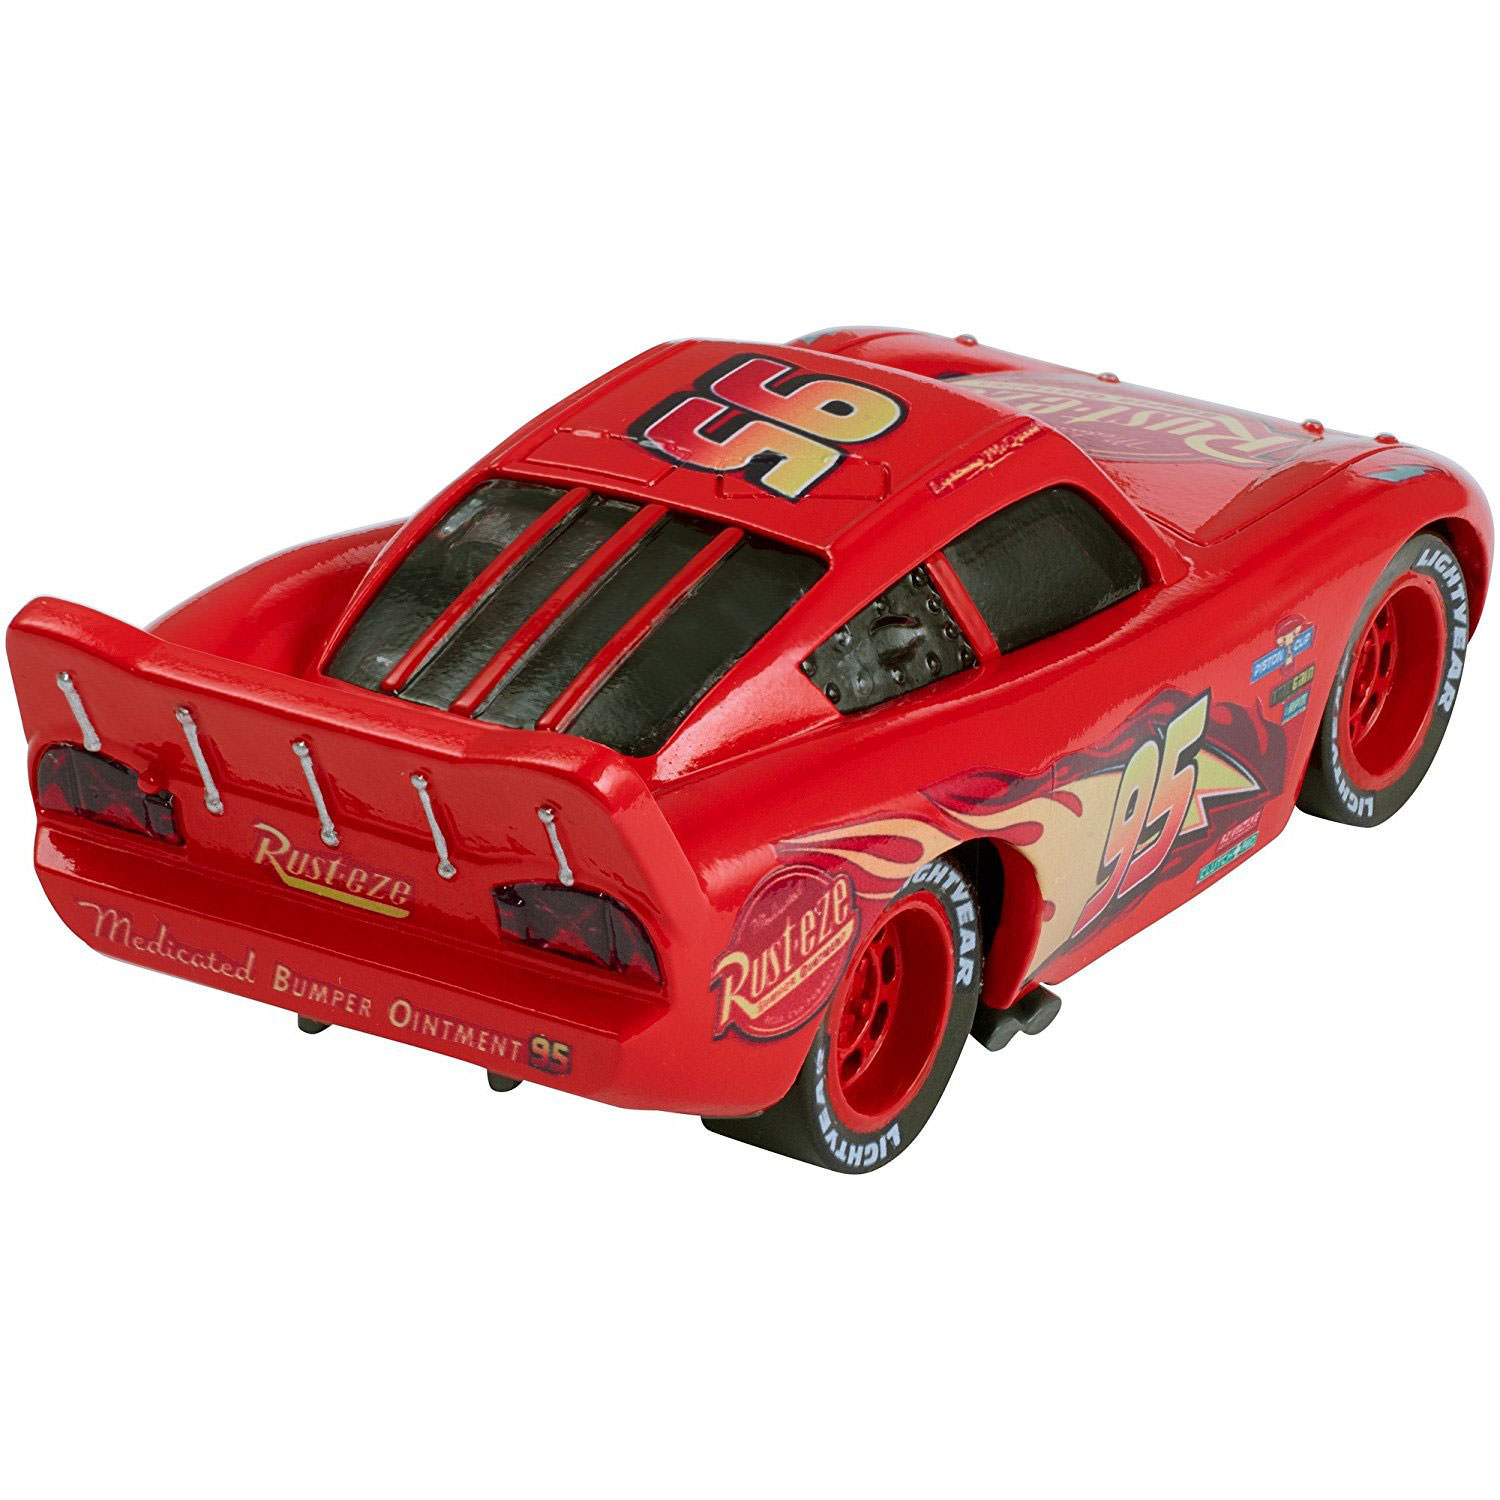 pixar cars 3 1 55 scale diecast character cars 3 lightning mcqueen at hobby warehouse. Black Bedroom Furniture Sets. Home Design Ideas